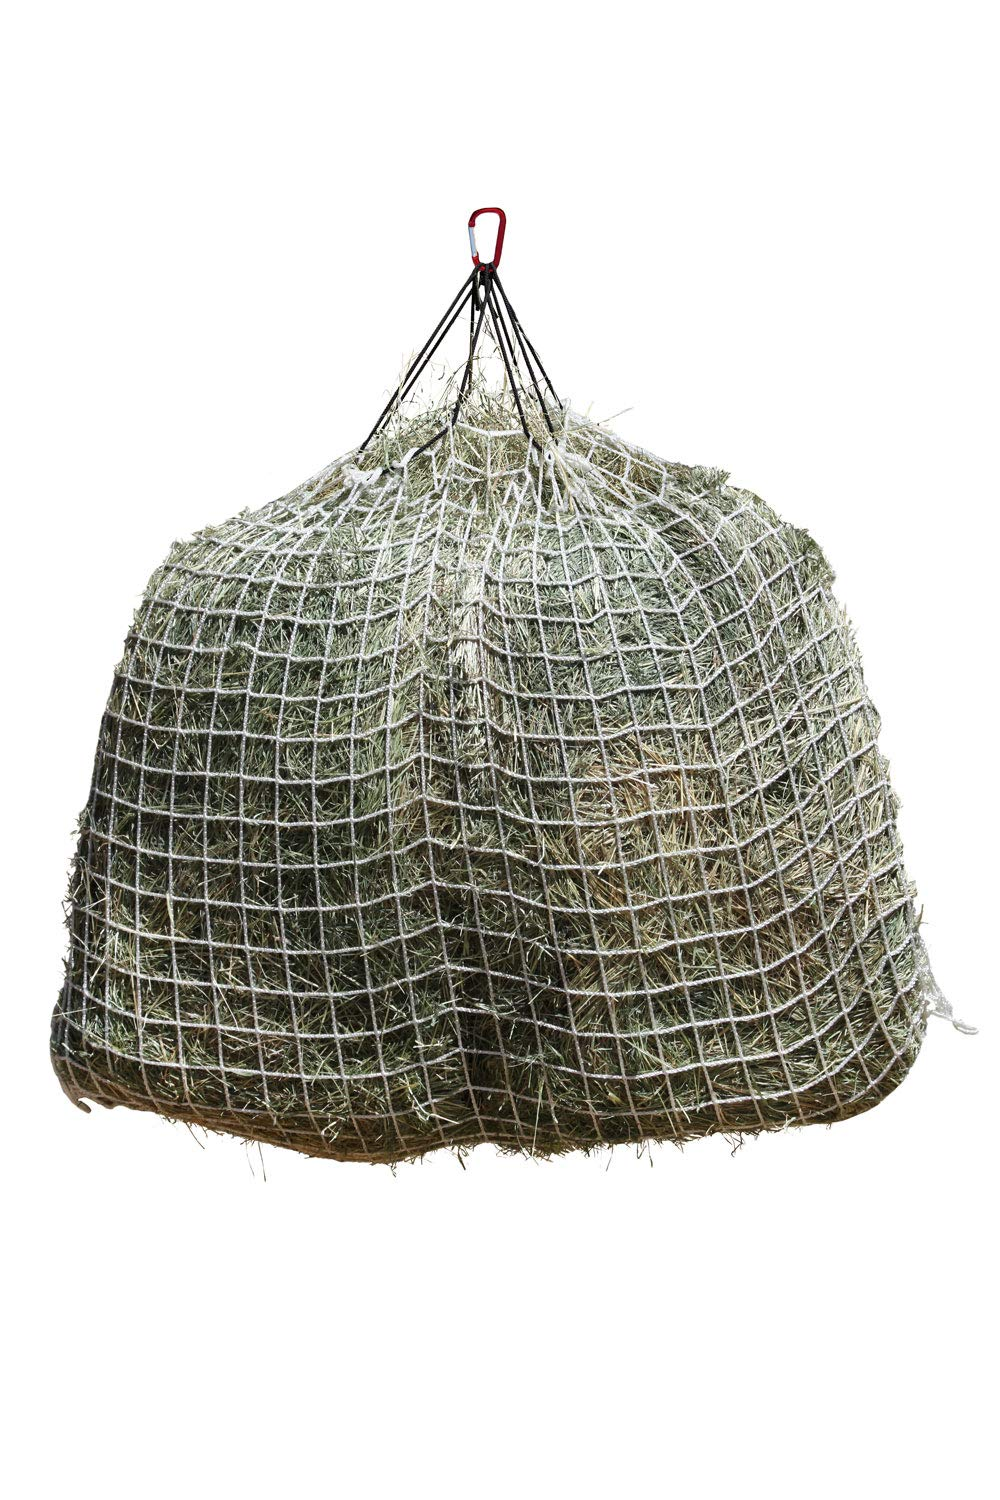 Freedom Feeder Mesh Net Full Day Slow Horse Feeder - Designed to Hold 30 lbs/4 Flakes of Hay and Feed Horse All Day - Reduces Horse Feeding Anxiety and Behavioral Issues by Freedom Feeder FF